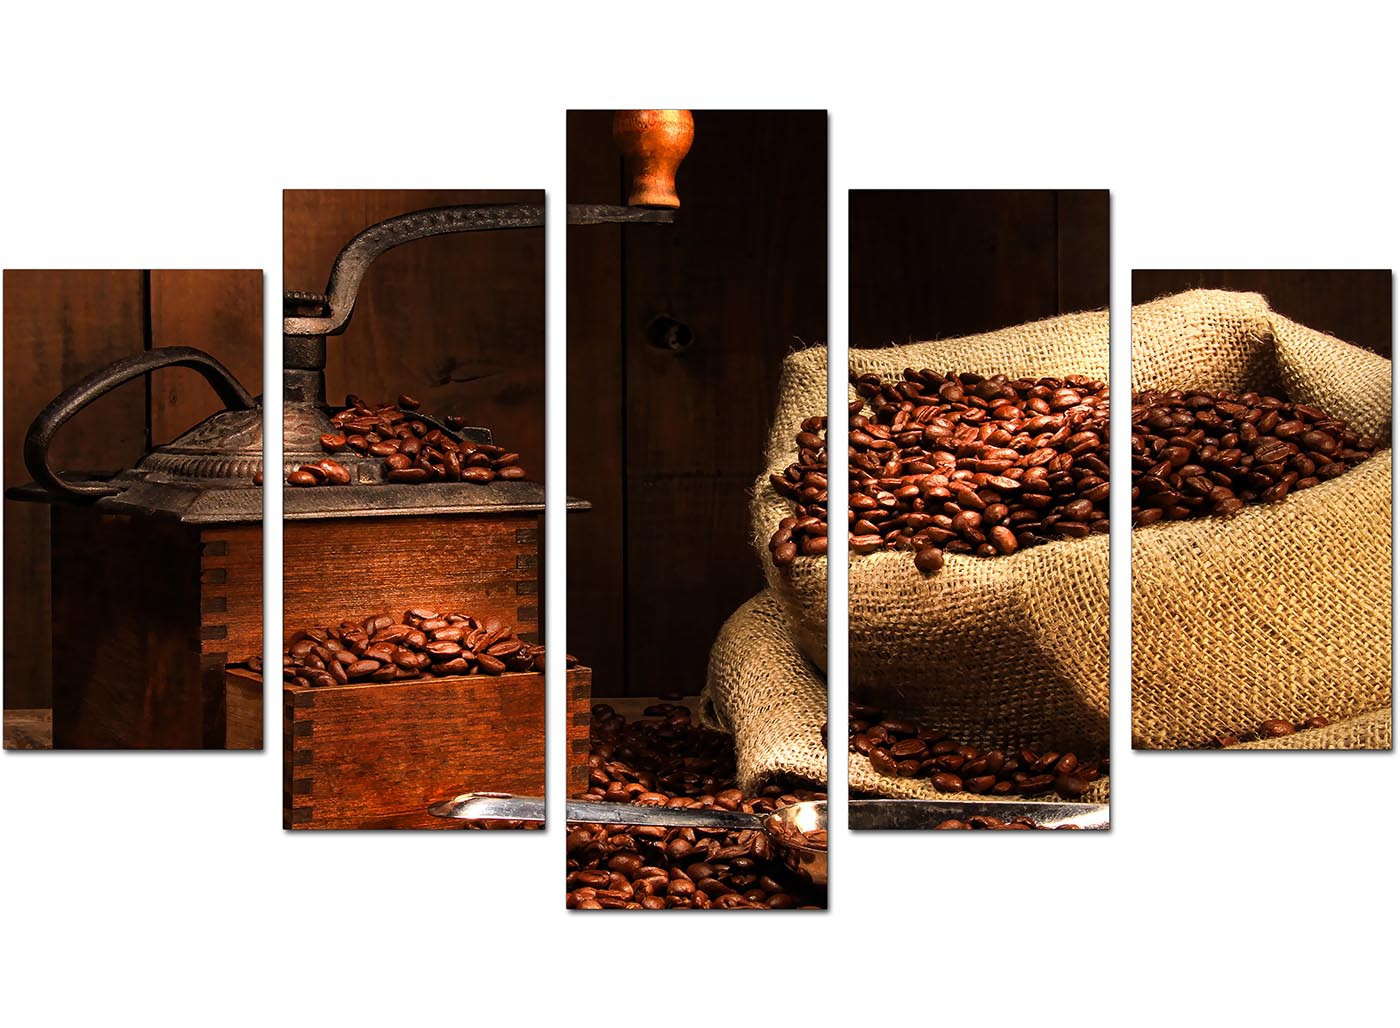 Extra Large Brown Coffee Beans Grinder Kitchen Canvas   5 Panel   160cm    5062